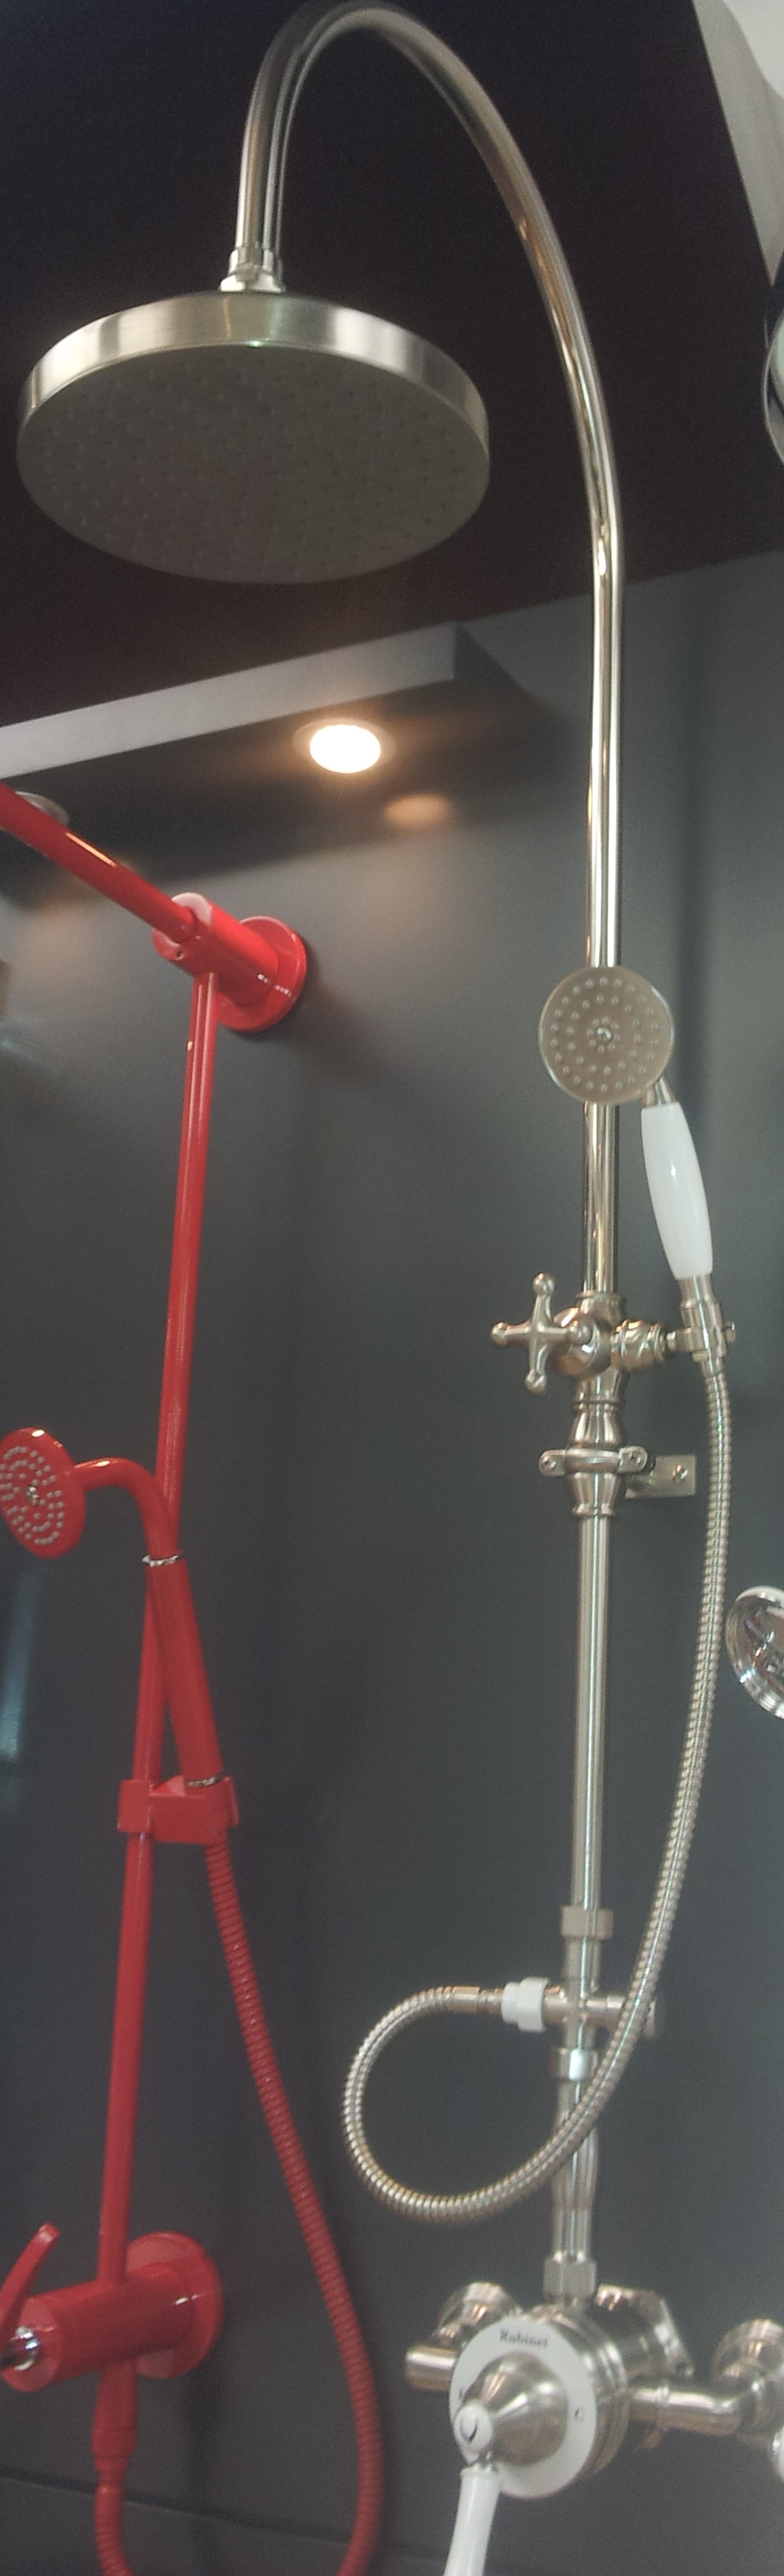 Ive chosen the Rubinet Raven but with a different shower head and ...